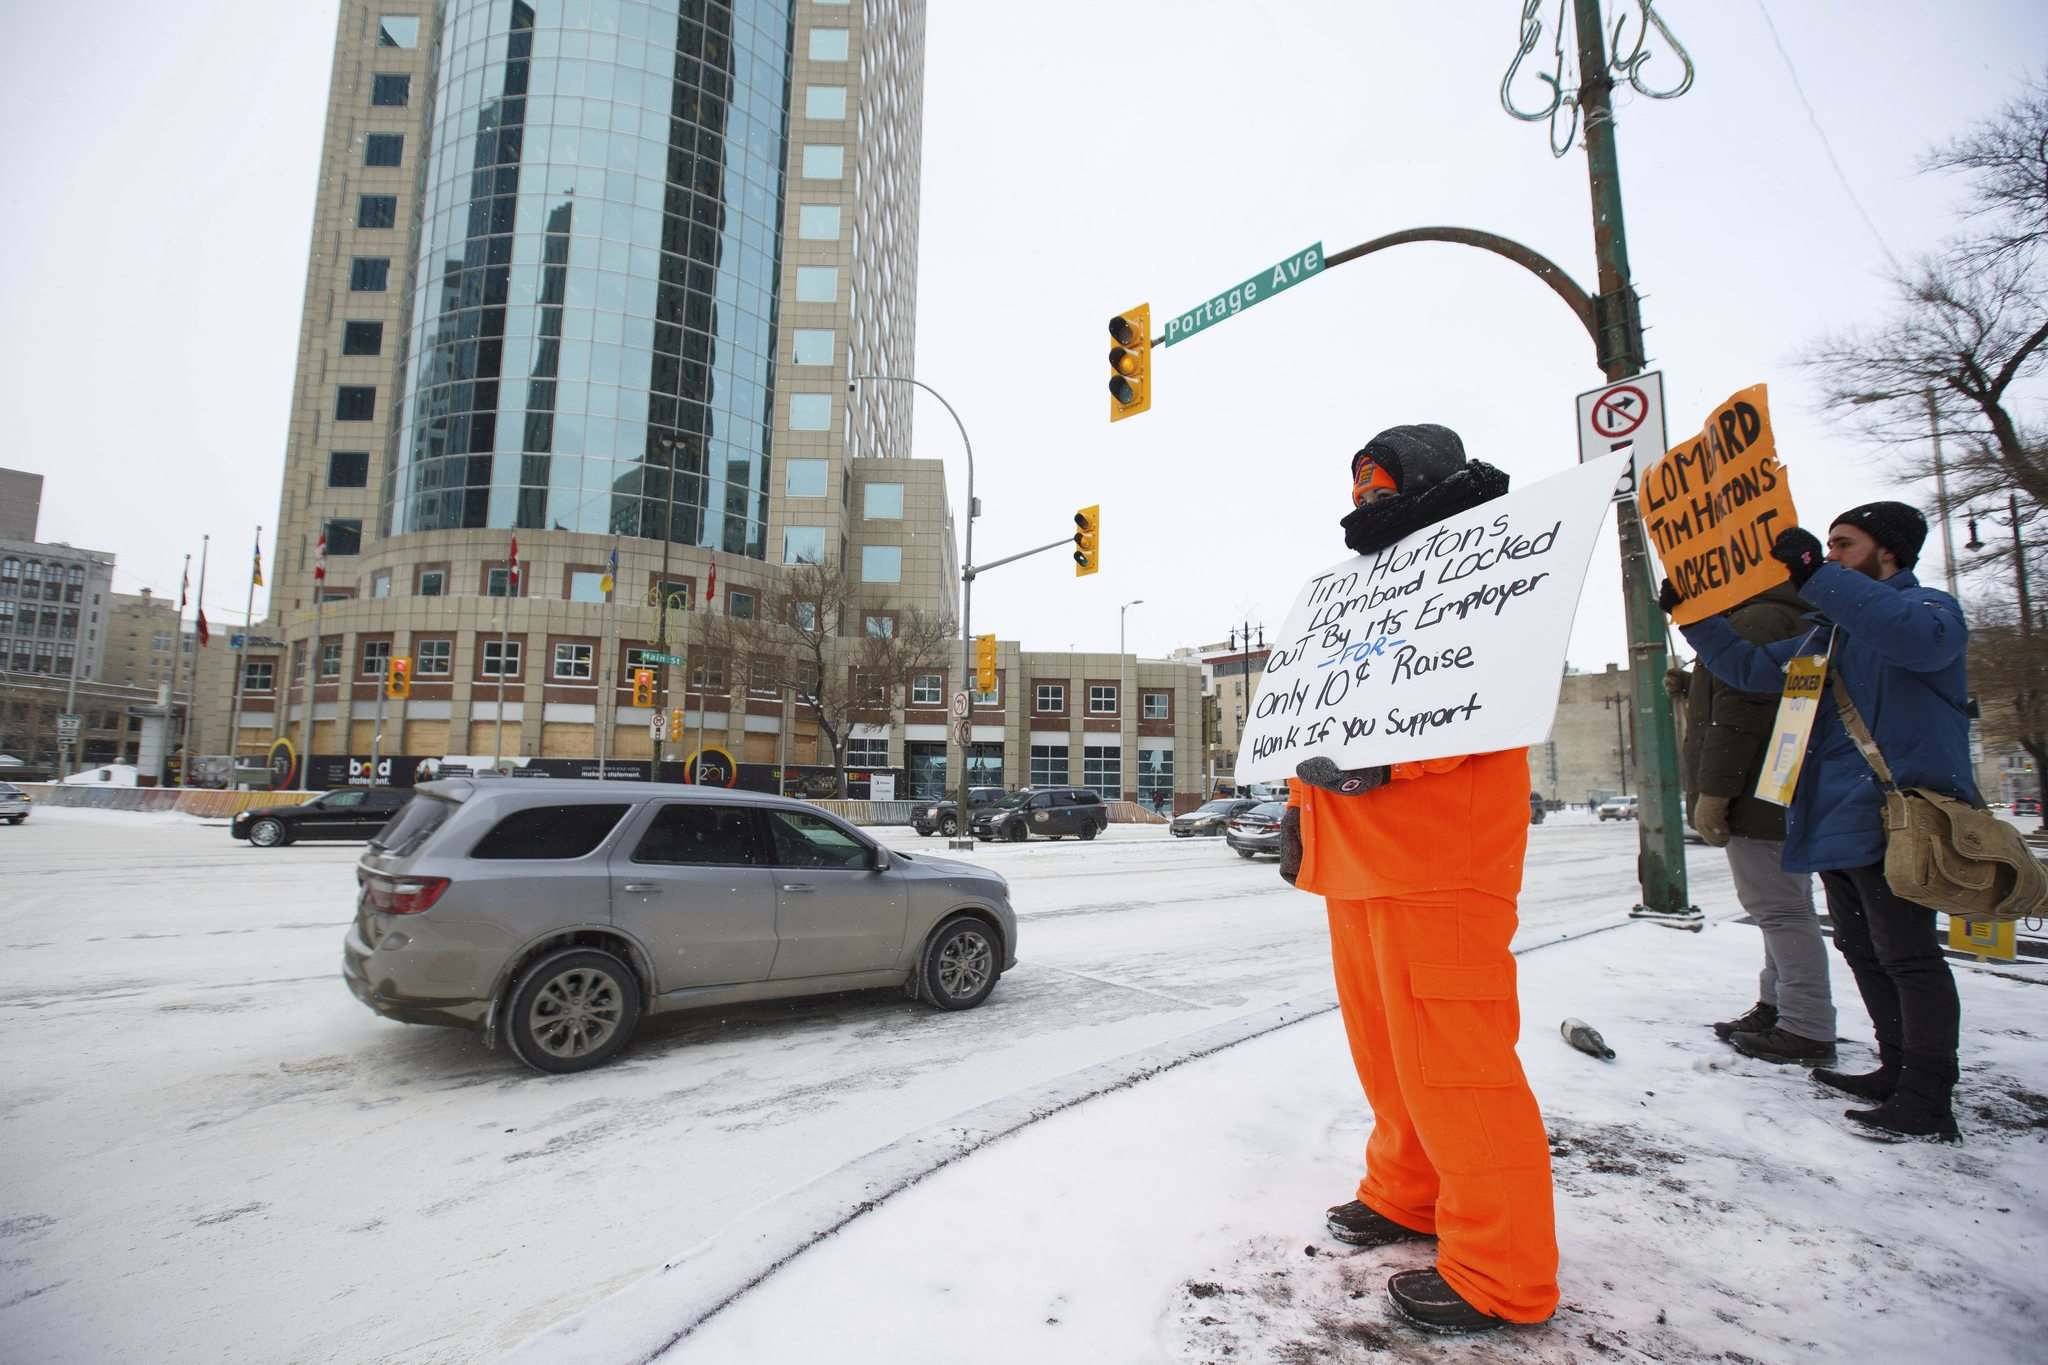 MIKE DEAL / WINNIPEG FREE PRESS</p><p>Locked out Tim Horton's employees and supporters demonstrate at Portage and Main Thursday, just outside of 1 Lombard Place where the coffee shop is located in the underground shopping centre.</p>